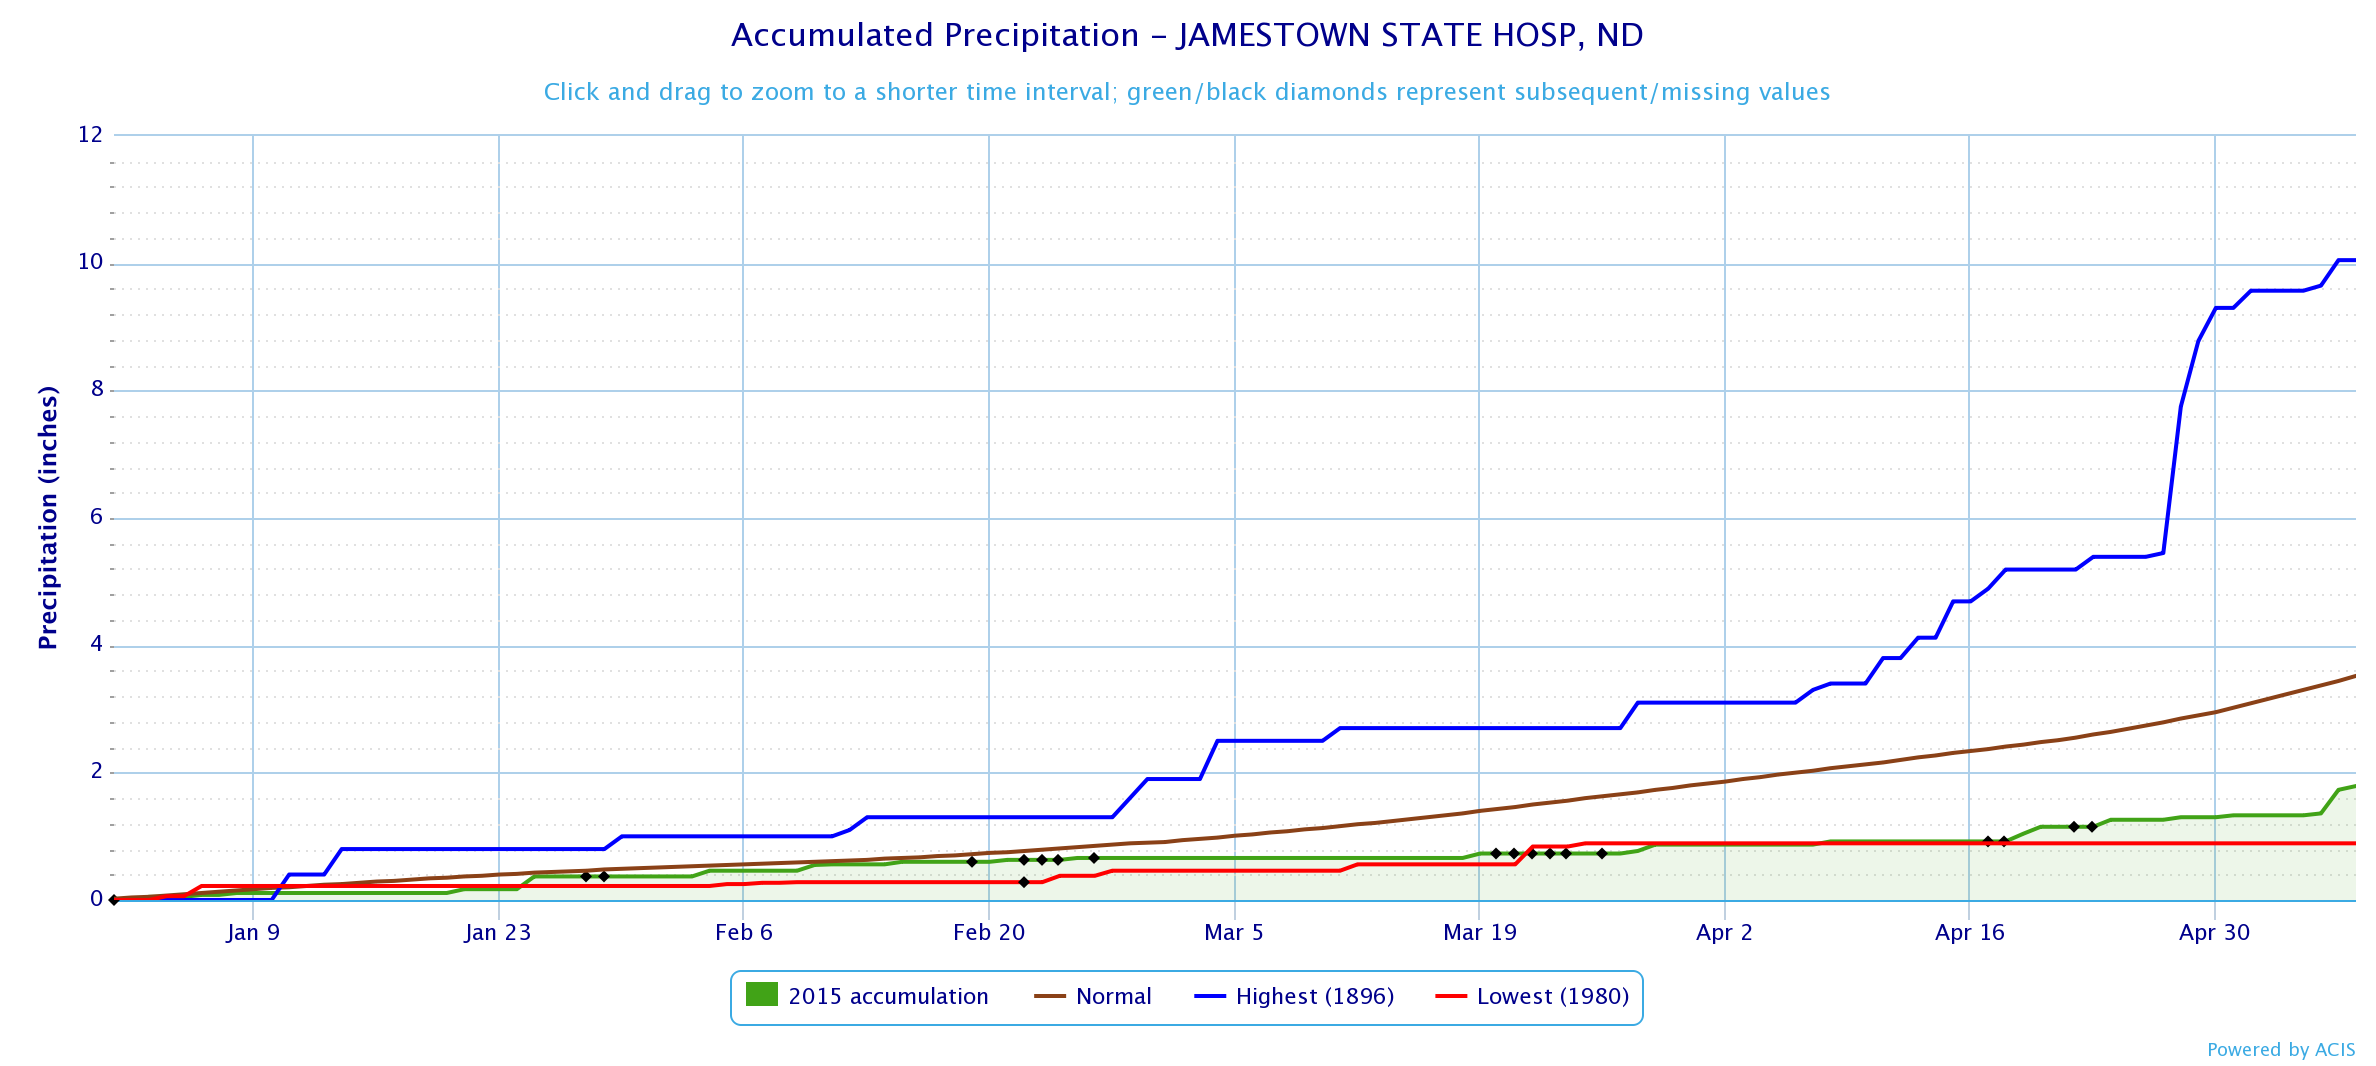 Year to date precipitation and record for Jamestown State Hospital